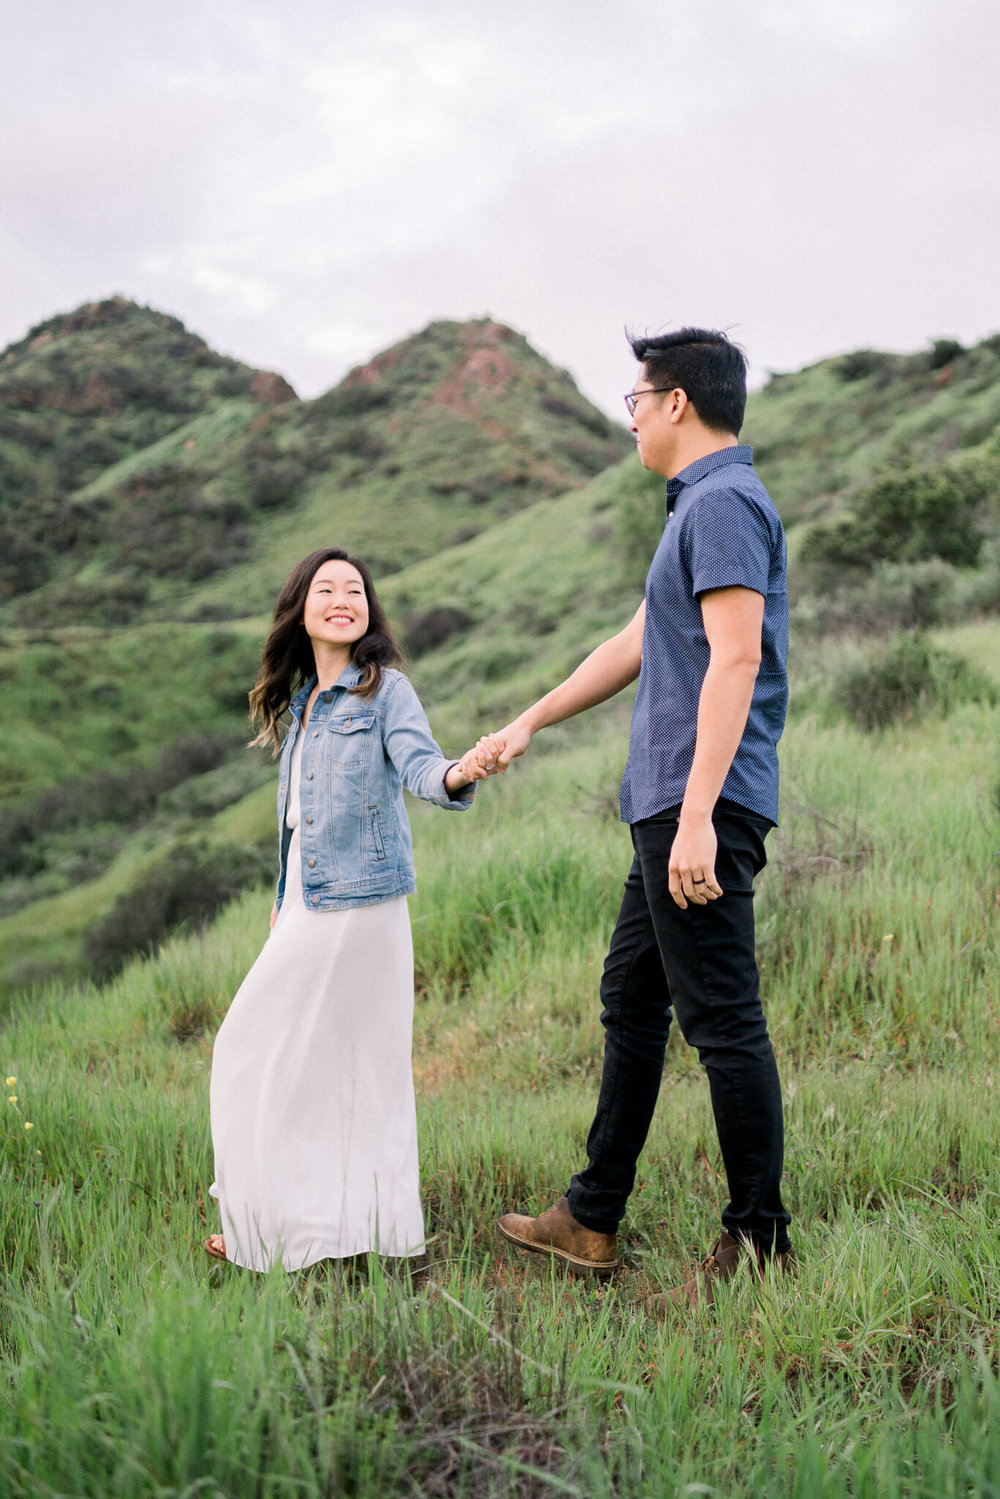 griffith-park-engagement-photos-9.jpg